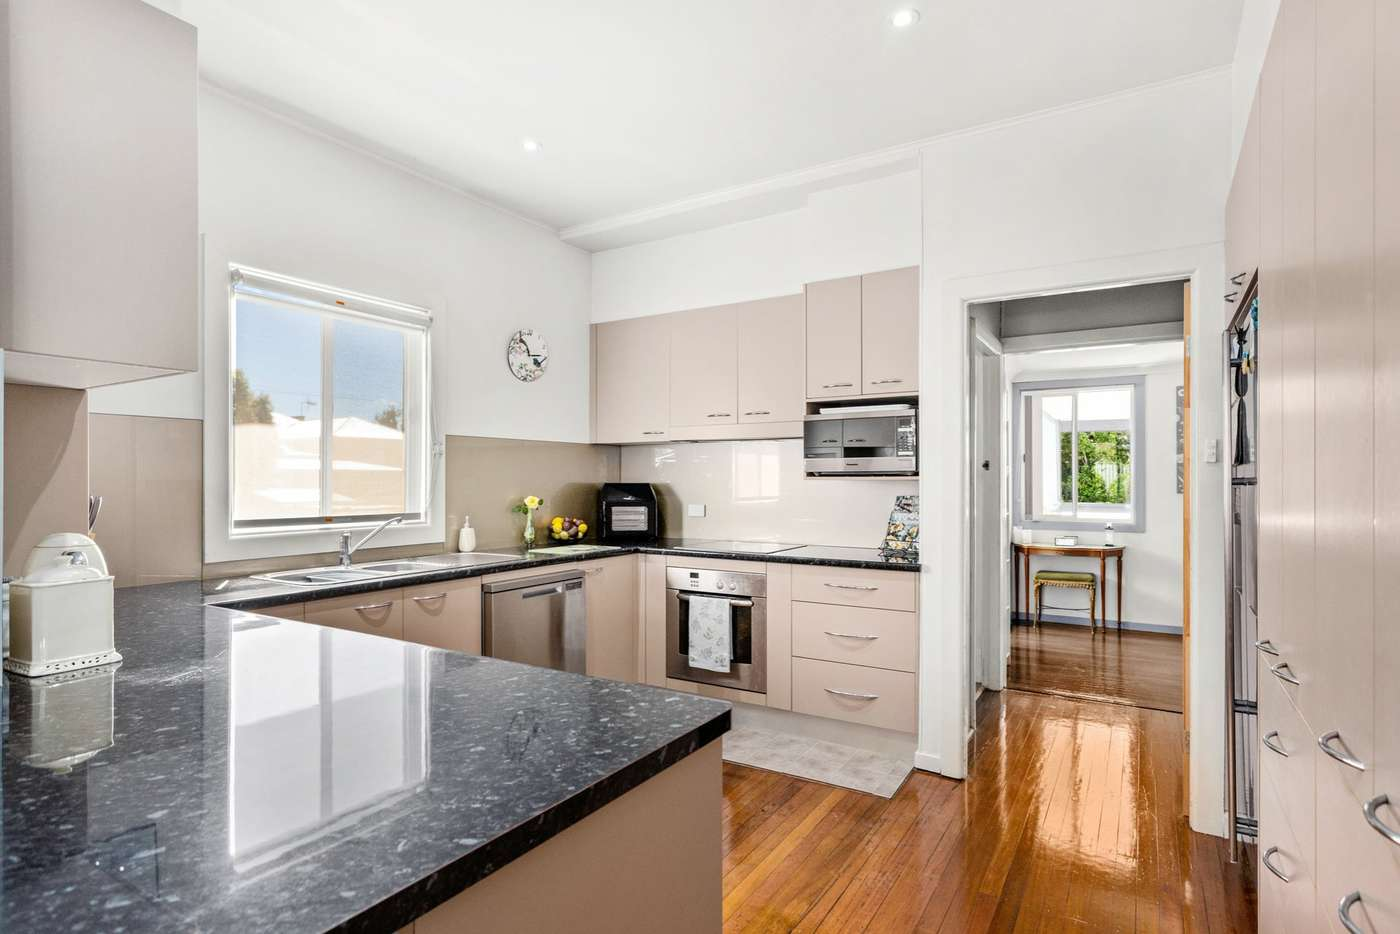 Seventh view of Homely house listing, 13 Queen Street, Wingham NSW 2429